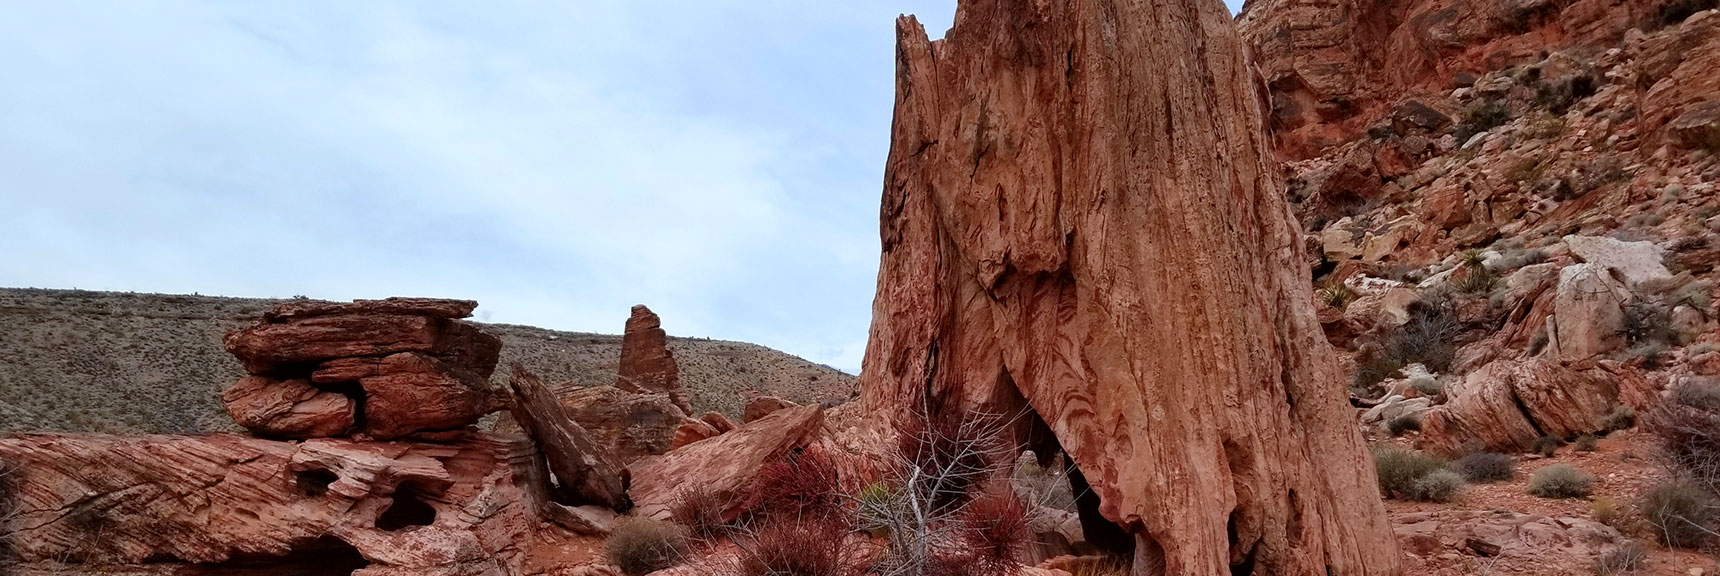 West Side of Calico Hills on Grand Circle, Red Rock National Park, Nevada